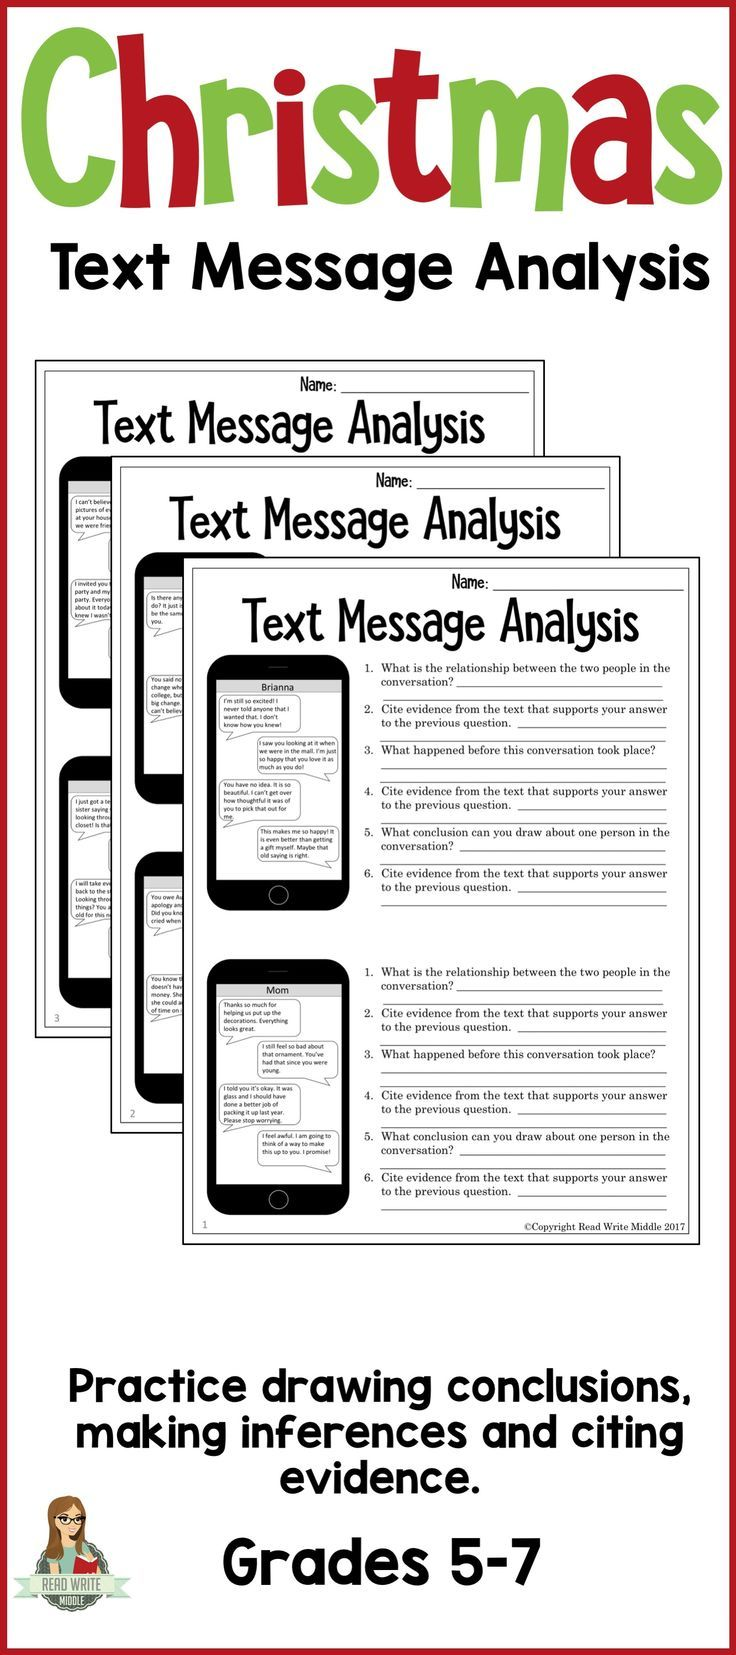 Workbooks inferencing worksheets grade 3 : The 25+ best Inference ideas on Pinterest | Inference activities ...